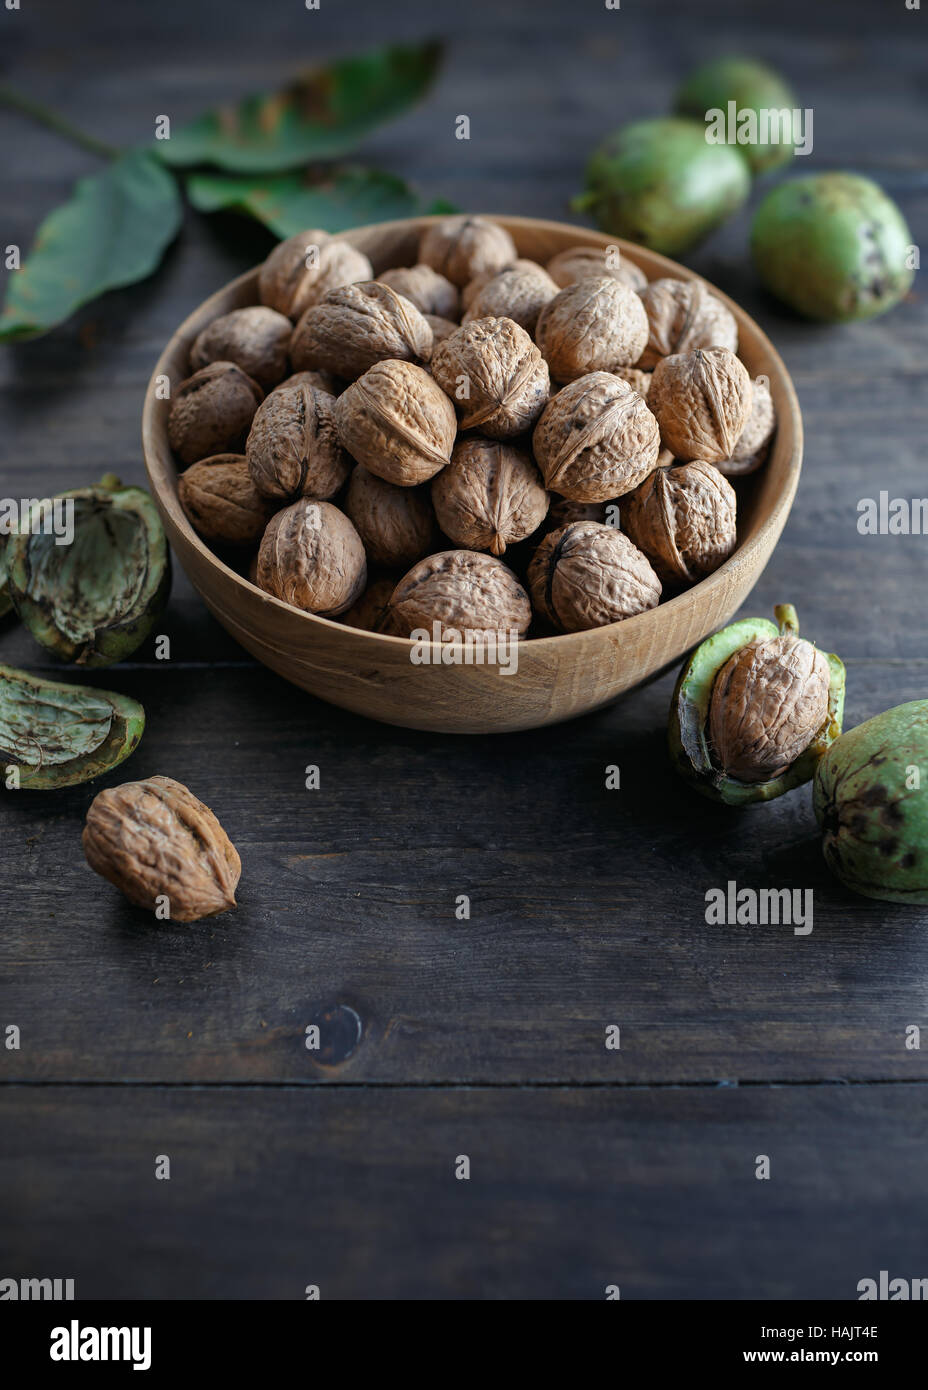 Bowl full of walnuts on wooden table - Stock Image